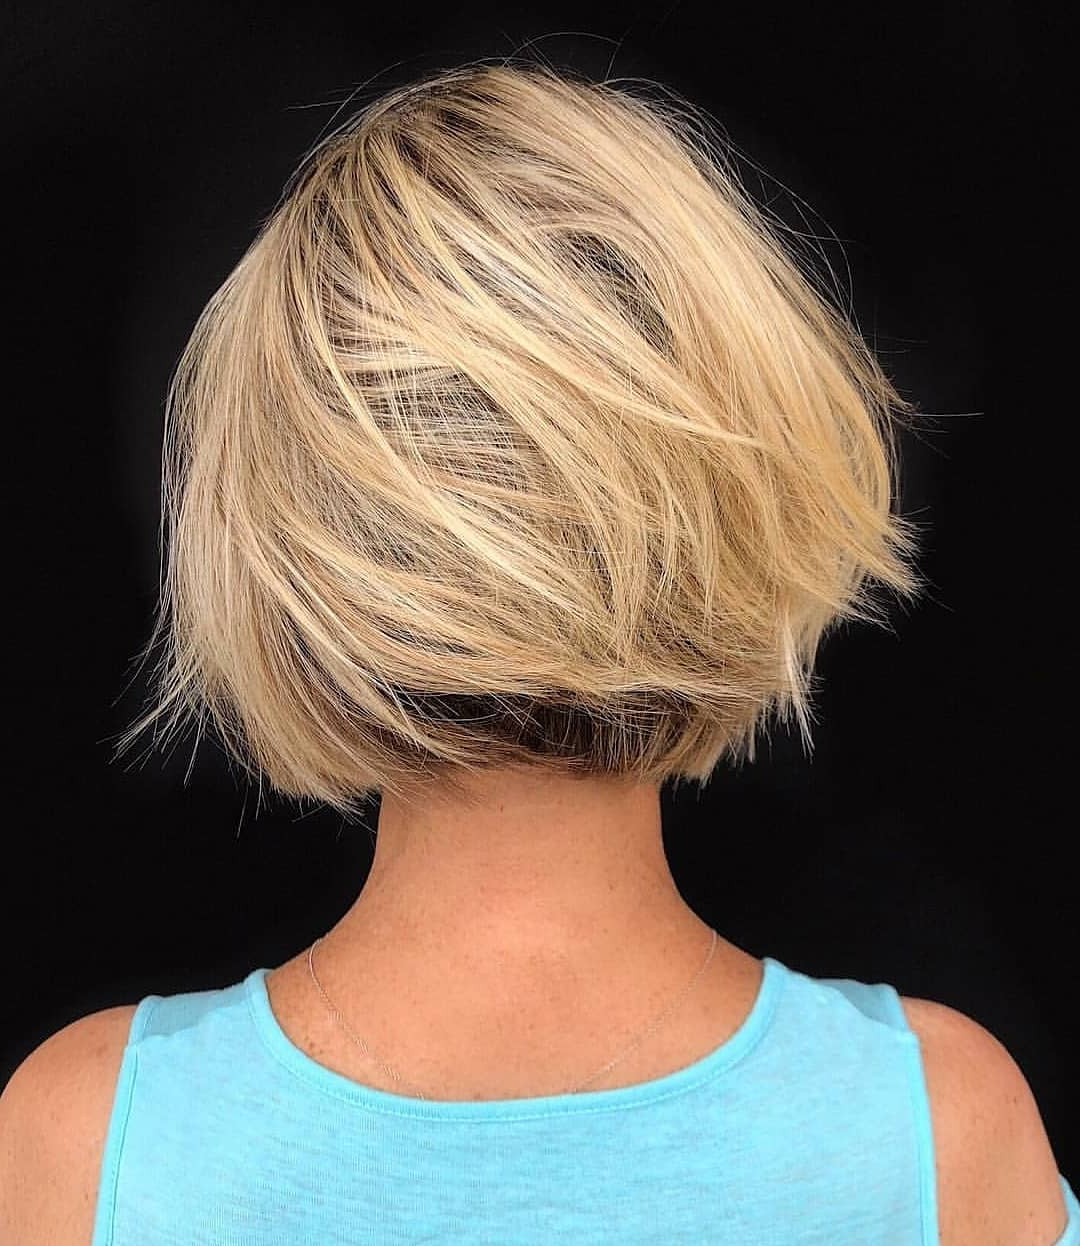 Top 10 Low Maintenance Short Bob Cuts For Thick Hair, Short With Regard To Smooth Bob Hairstyles For Thick Hair (View 17 of 20)